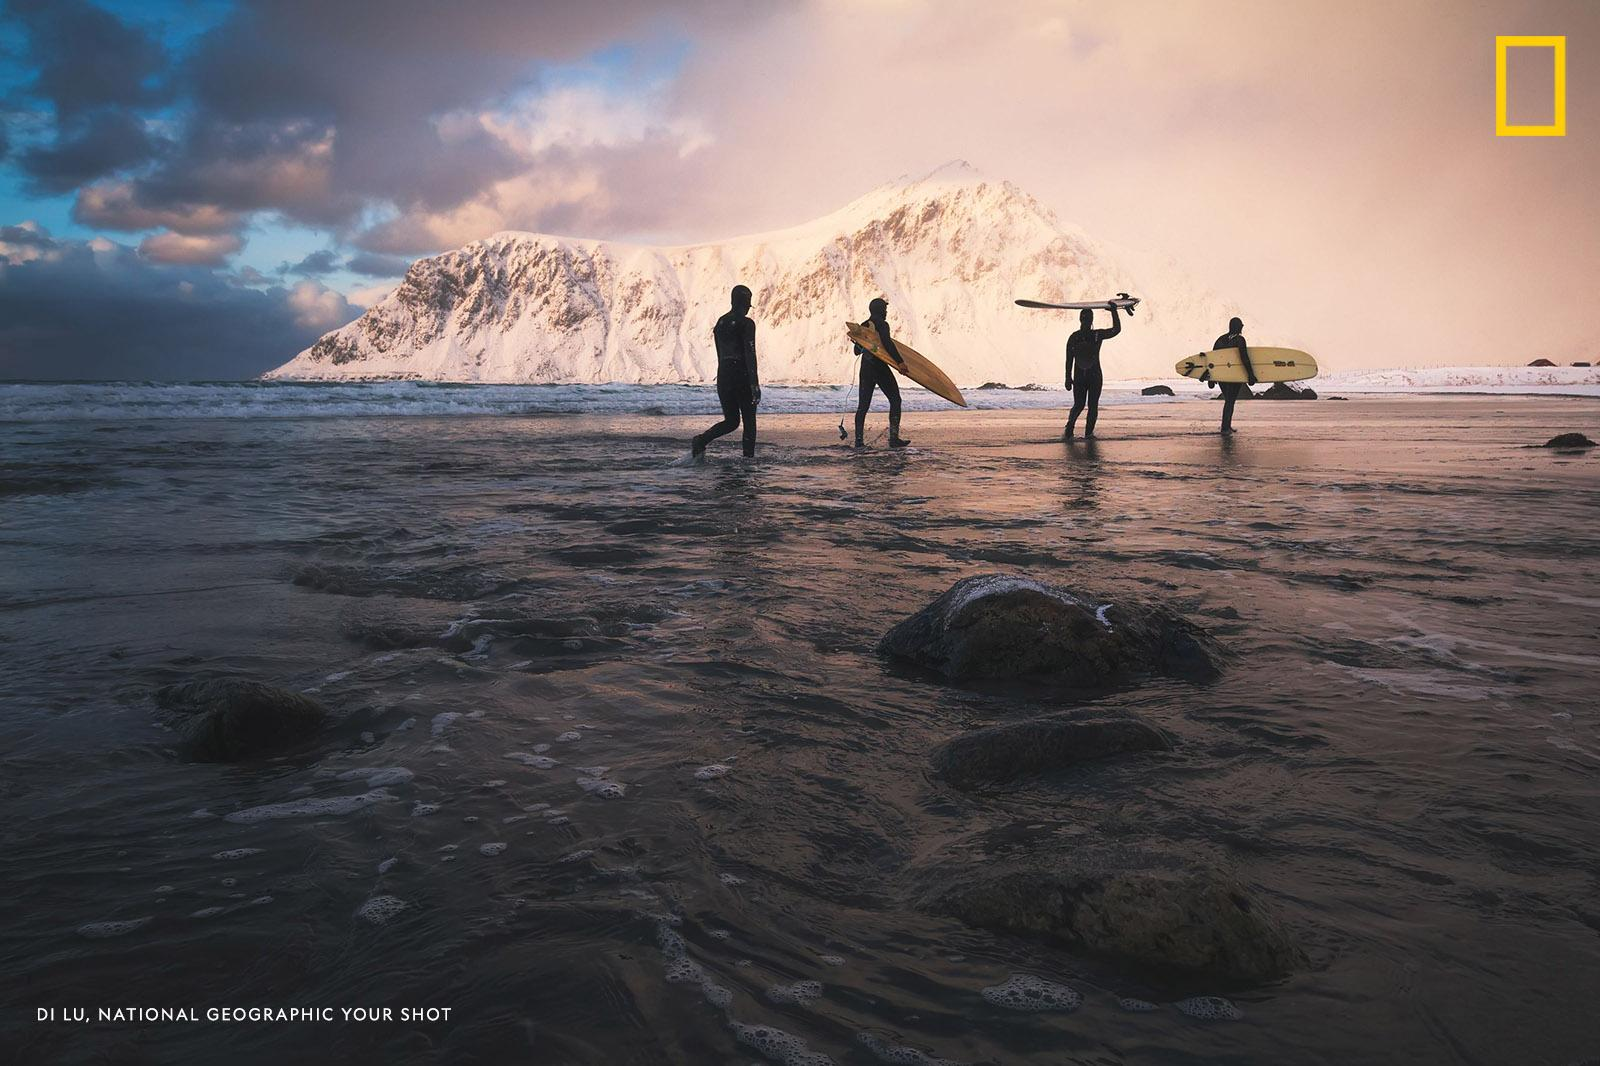 """People love adventure, especially in a magical place like Lofoten Islands which is one of the northernmost places in the world,"" writes Your Shot photographer Di Lu. https://on.natgeo.com/2GuGUgX"